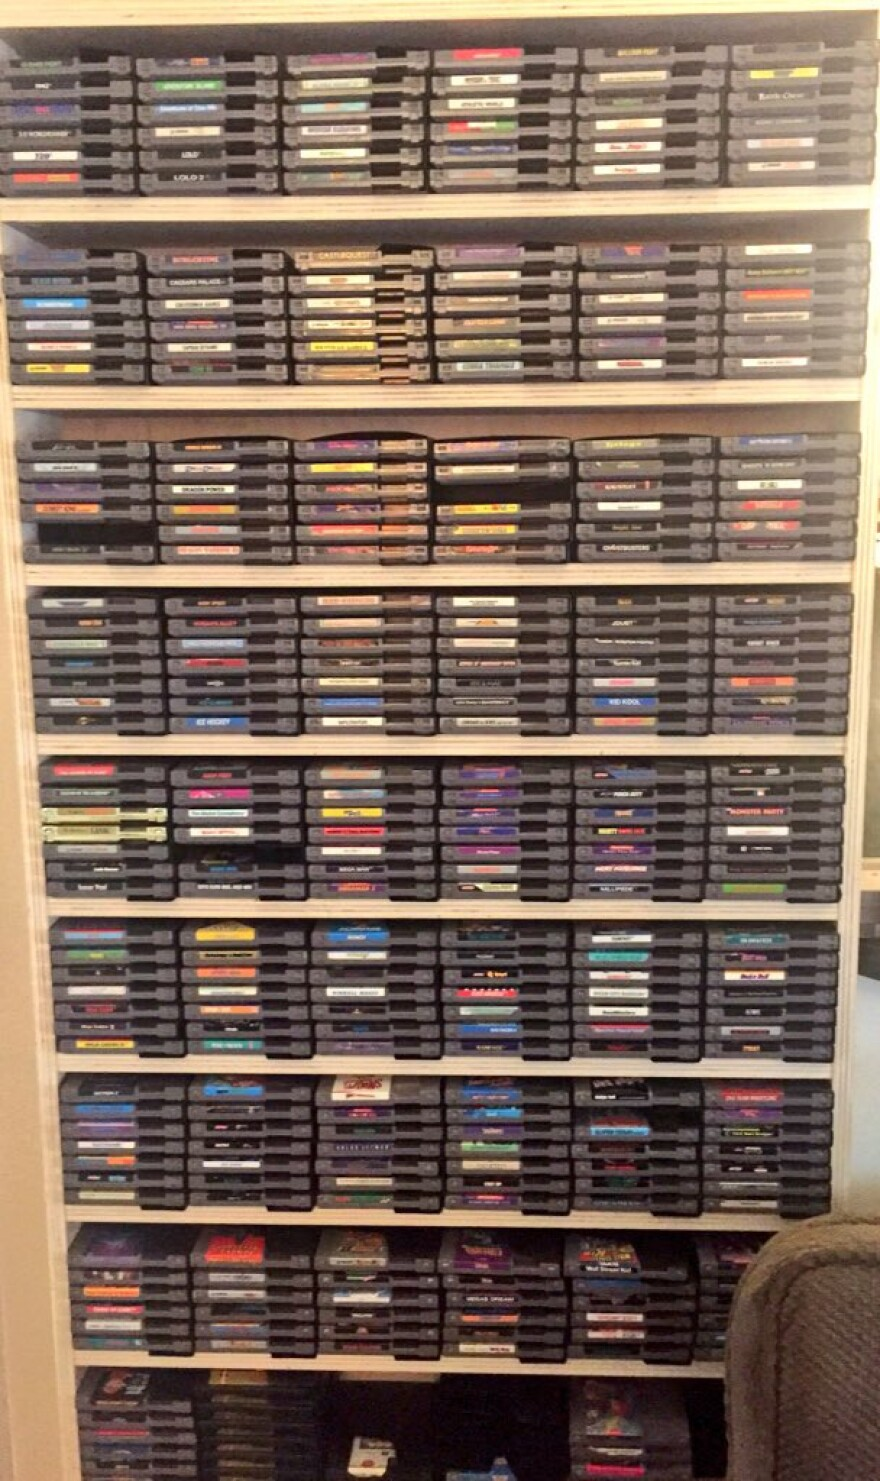 Kovacs video game collection